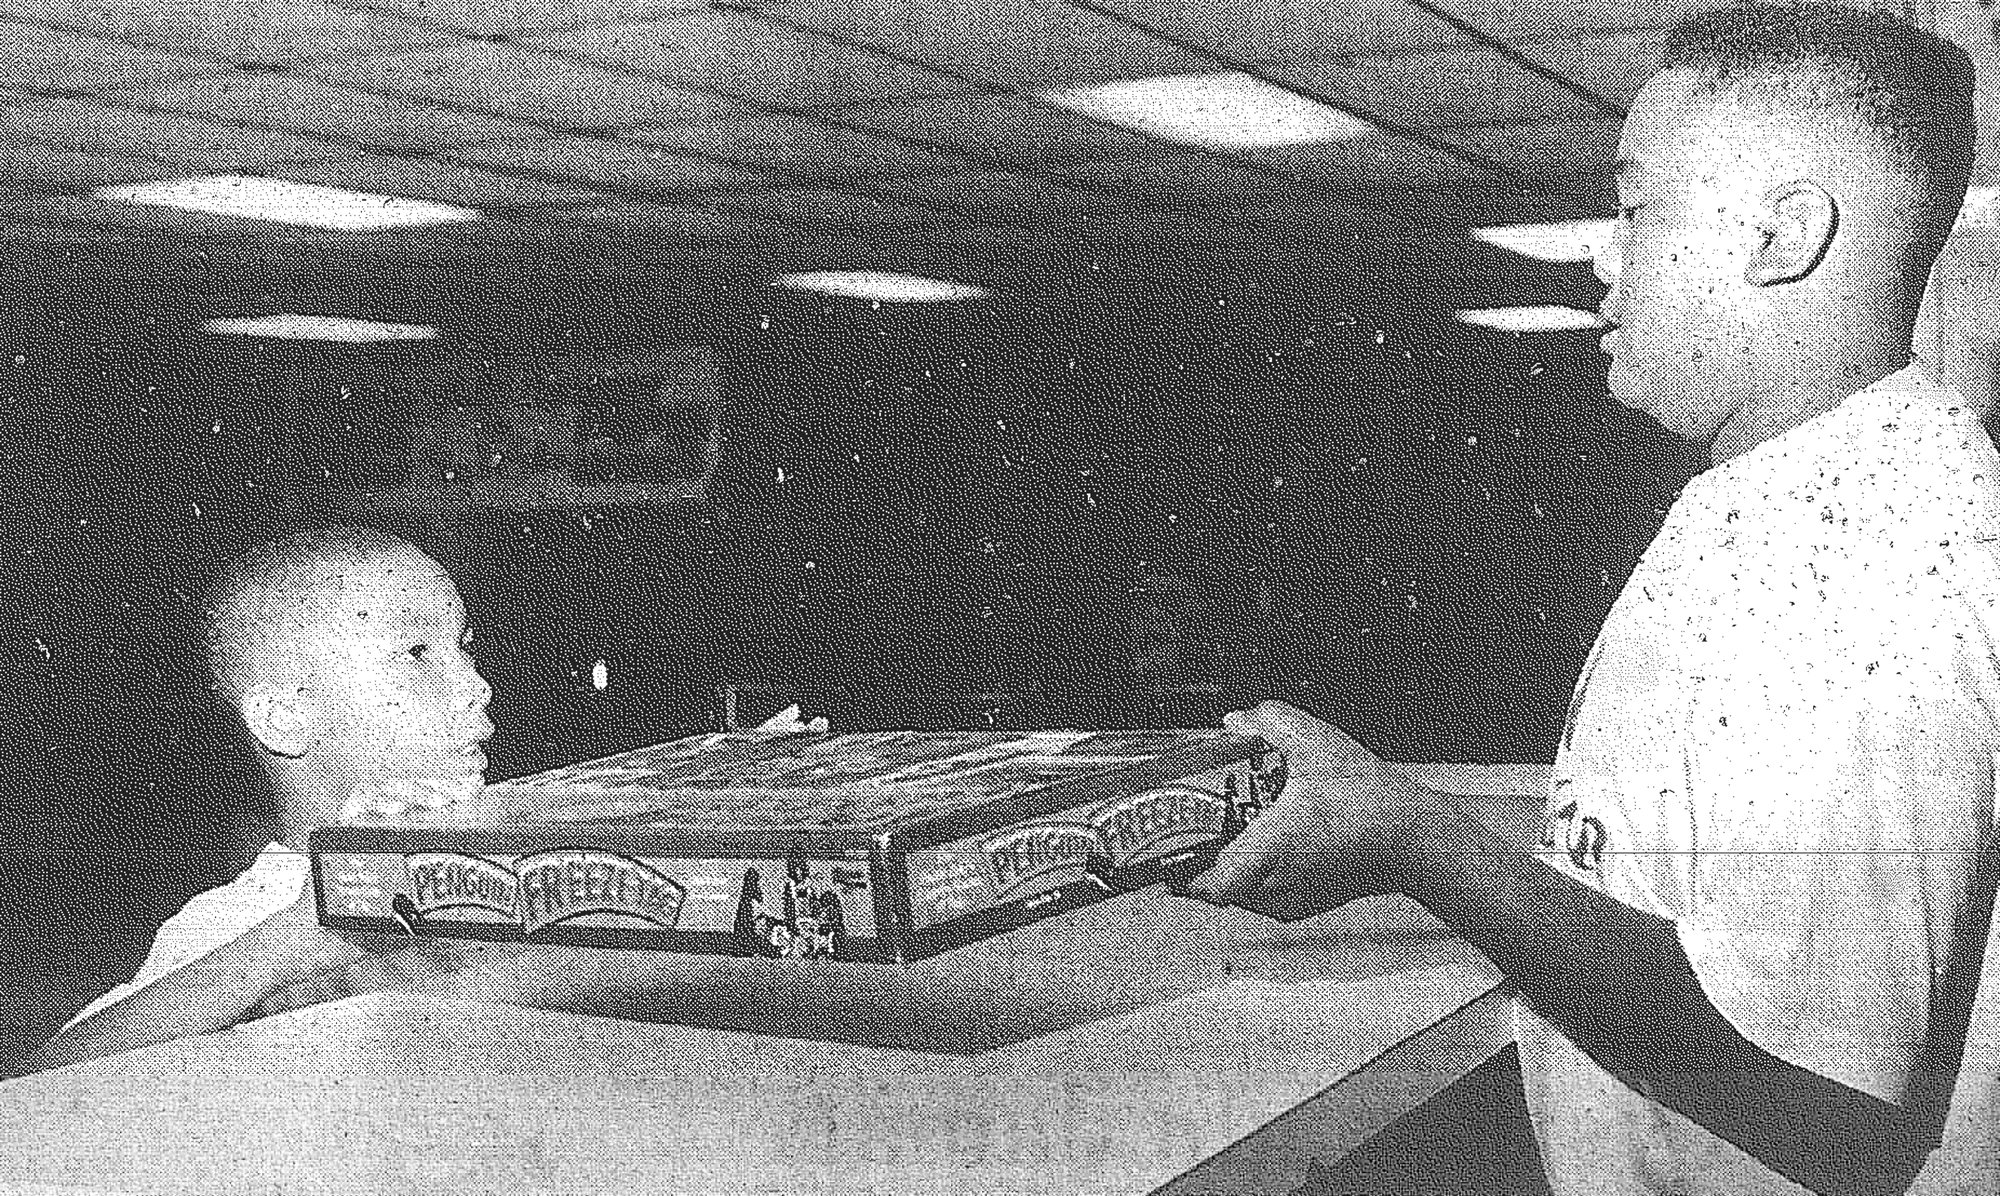 1994 - Corey Pendergrass, 14, checks out a game to Keith Robinson, 8, in the Sumter Boys & Girls Club. Corey also tutored kids in math, settled disputes and acted as a role model for the kids at the youth center.